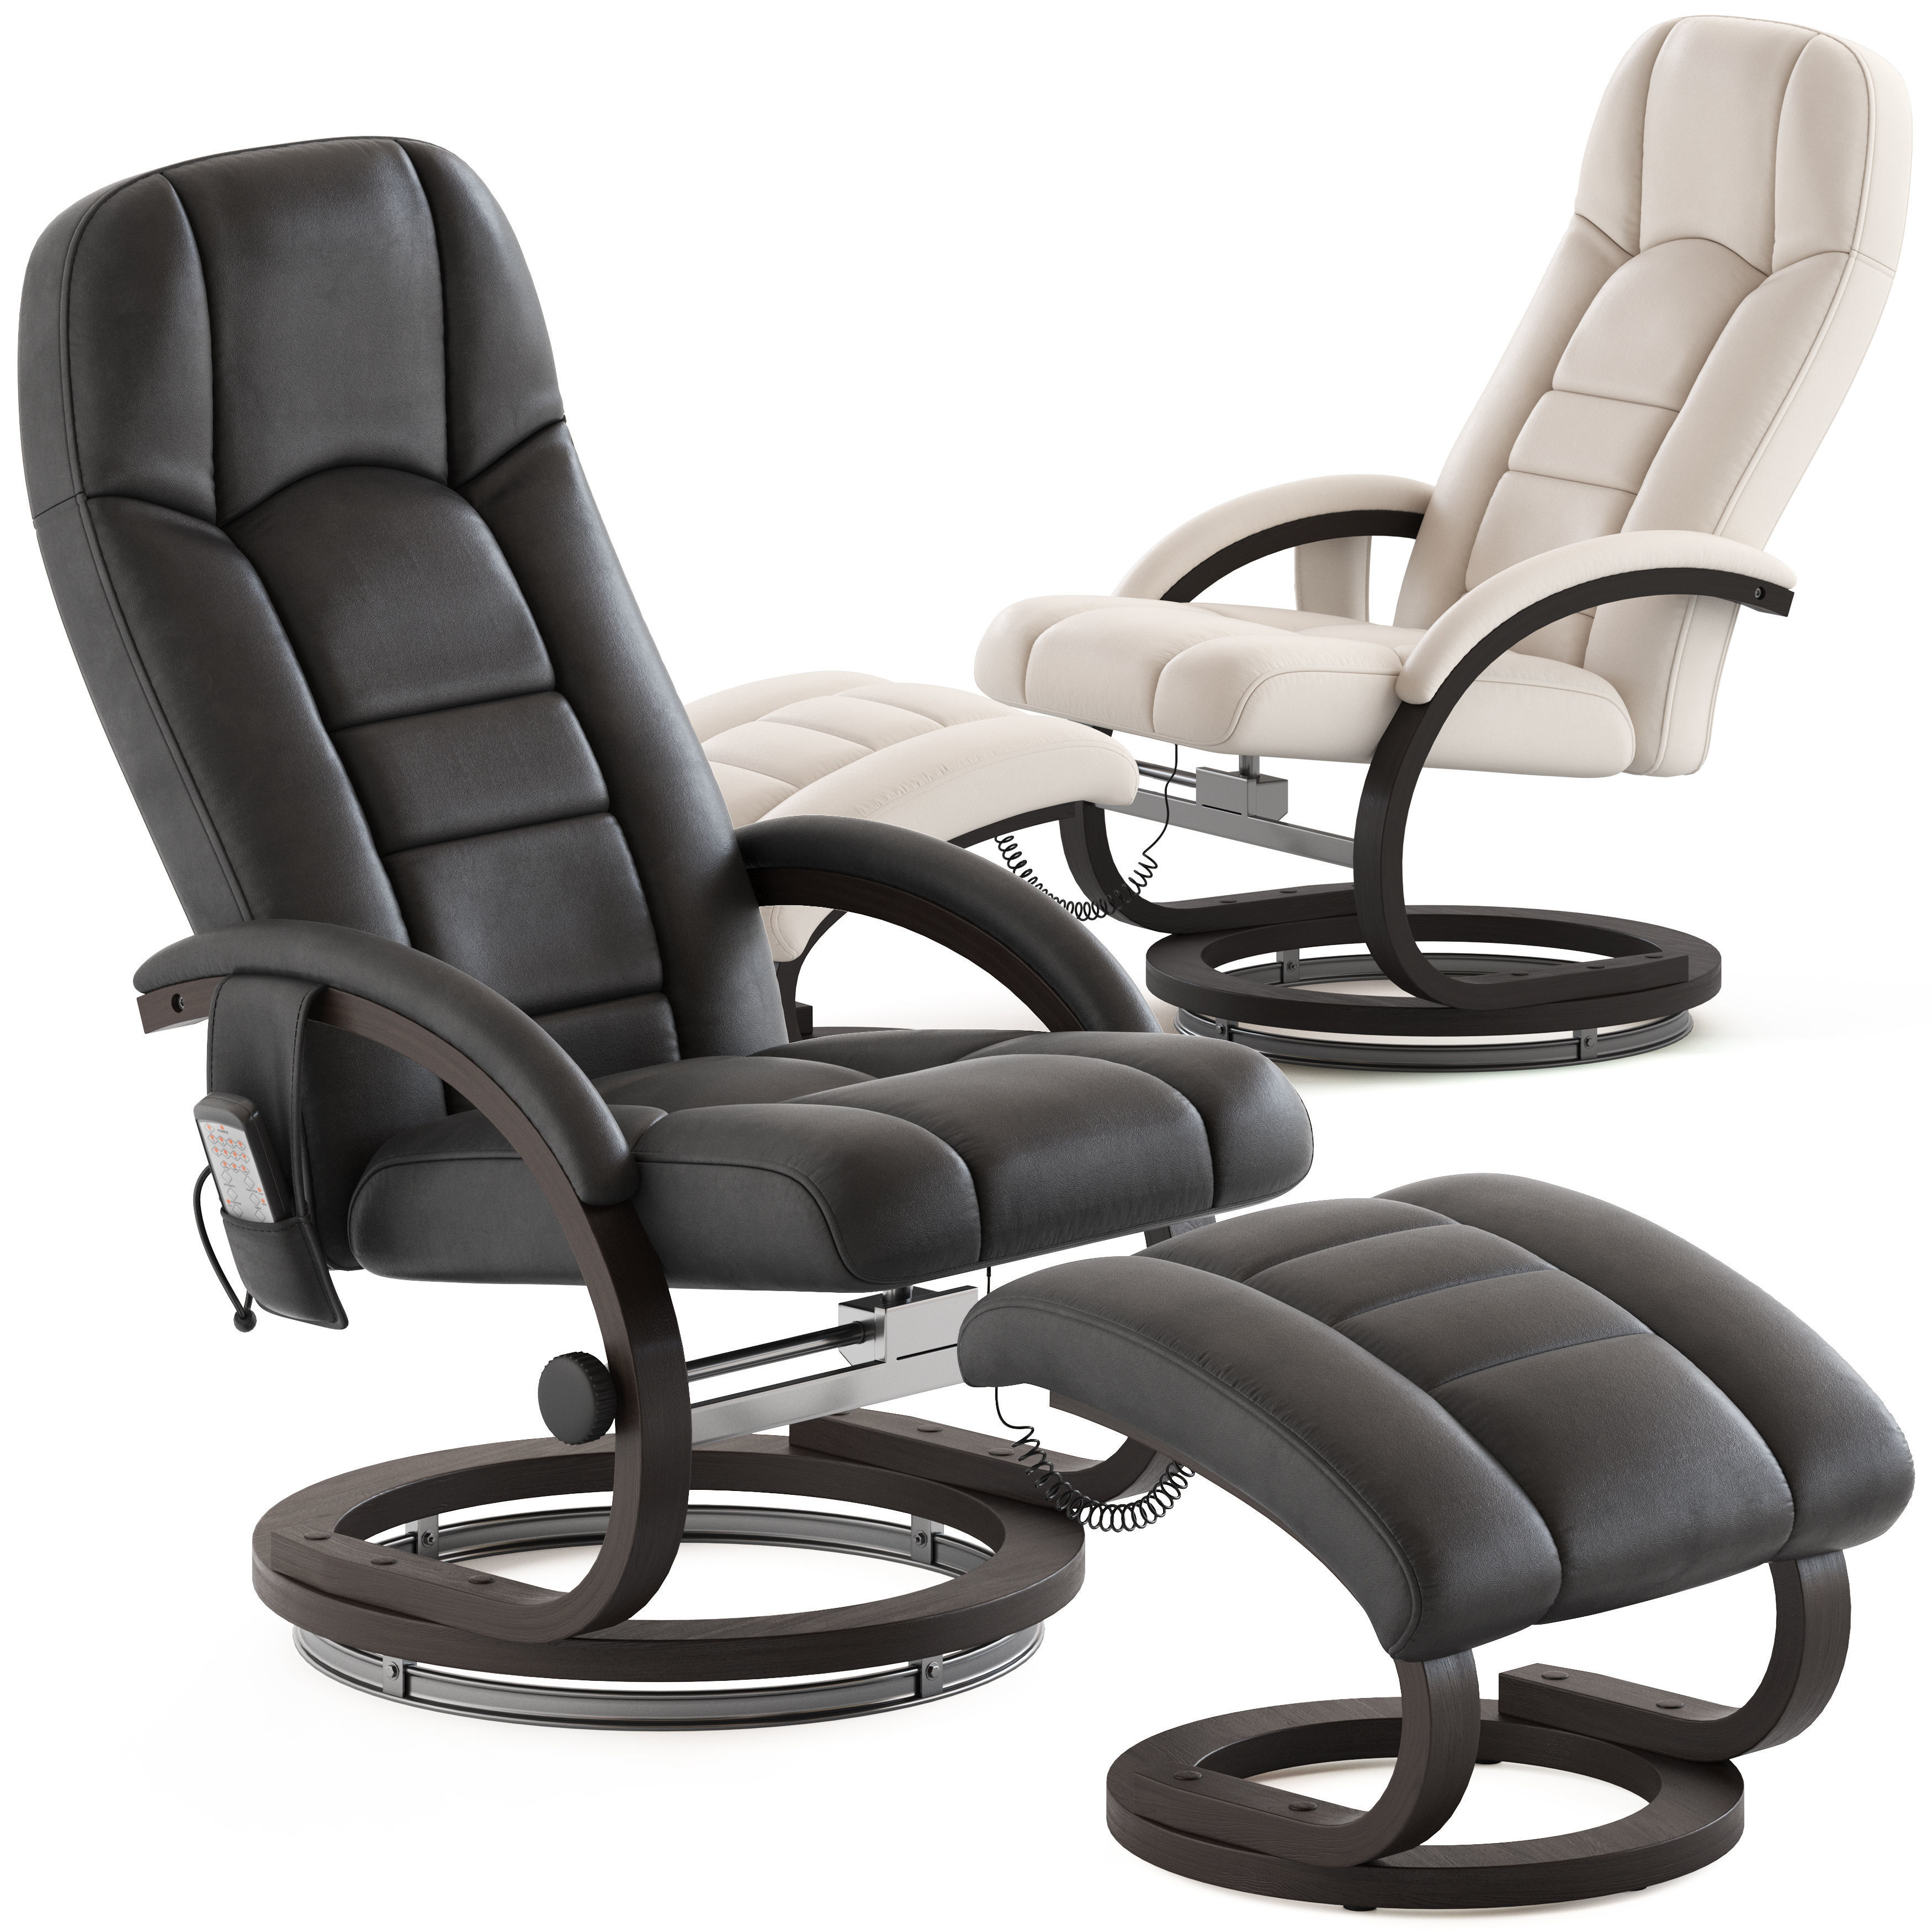 Essential Home Supply Malandi Massage Chair and Ottoman